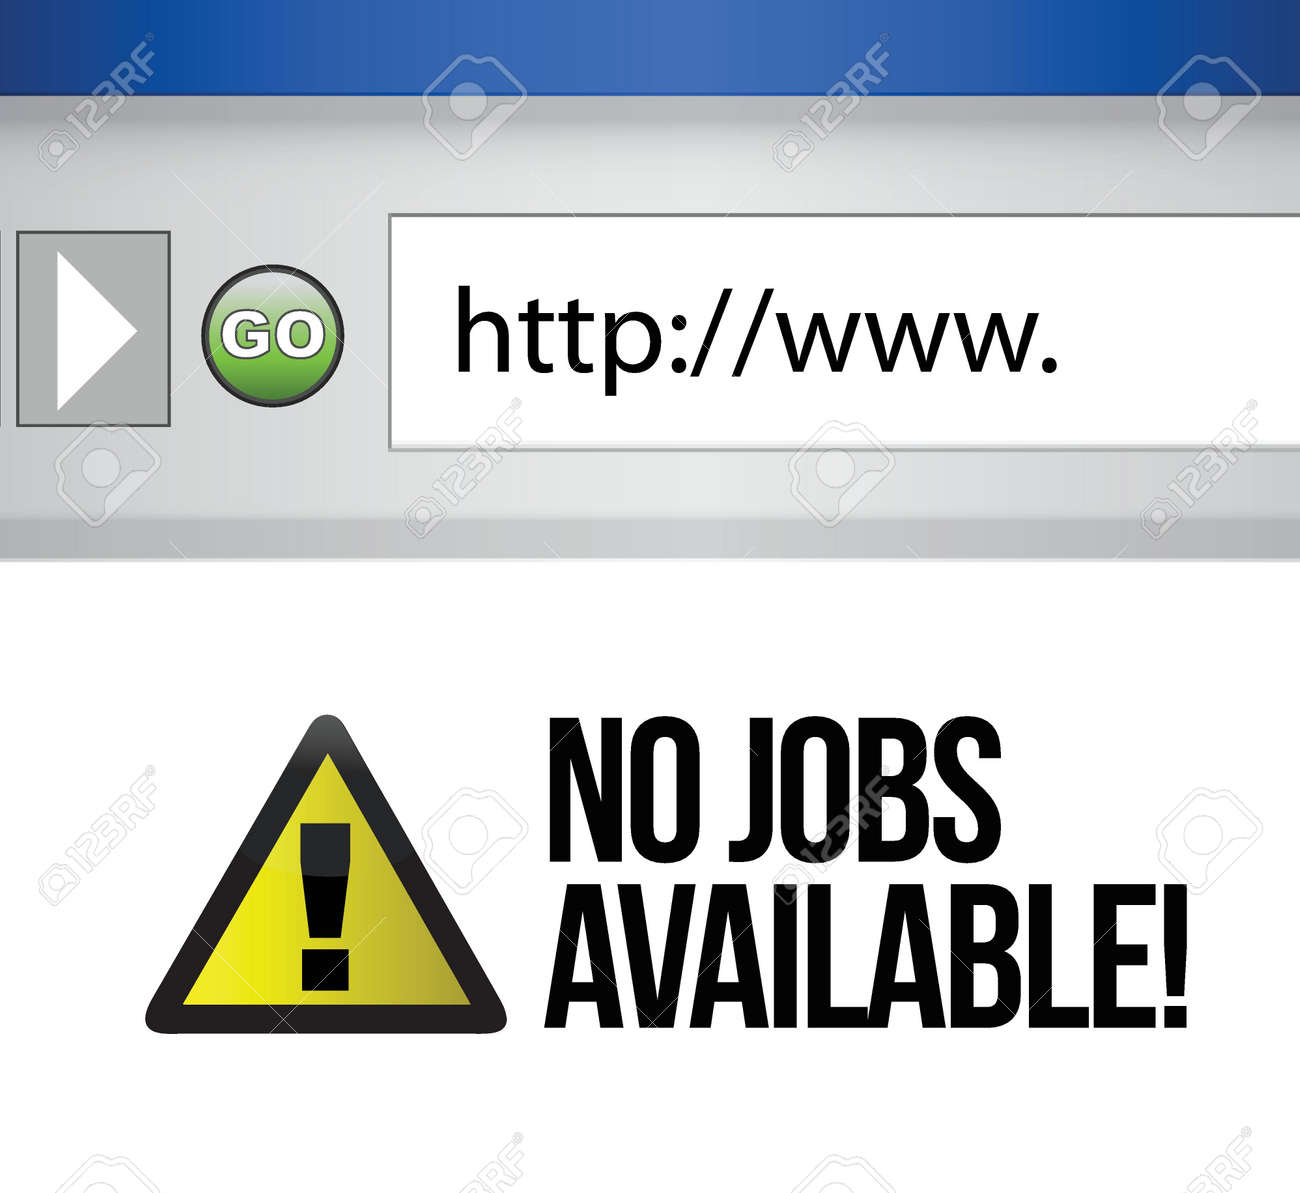 no jobs available illustration design on a computer browser Stock Vector - 17032352